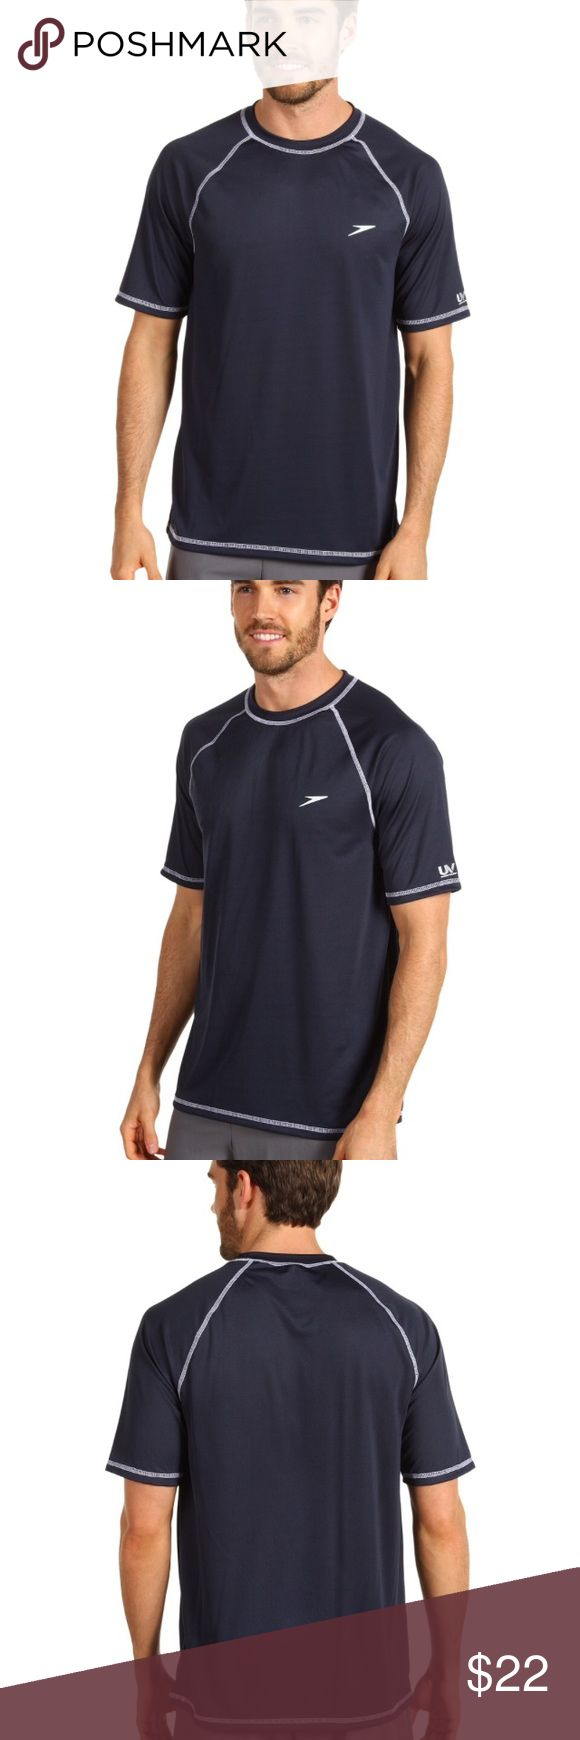 NWOT Men's speedo top Perfect condition and great material. Lightweight and dri fit like material. Color is navy Speedo Shirts Tees - Short Sleeve